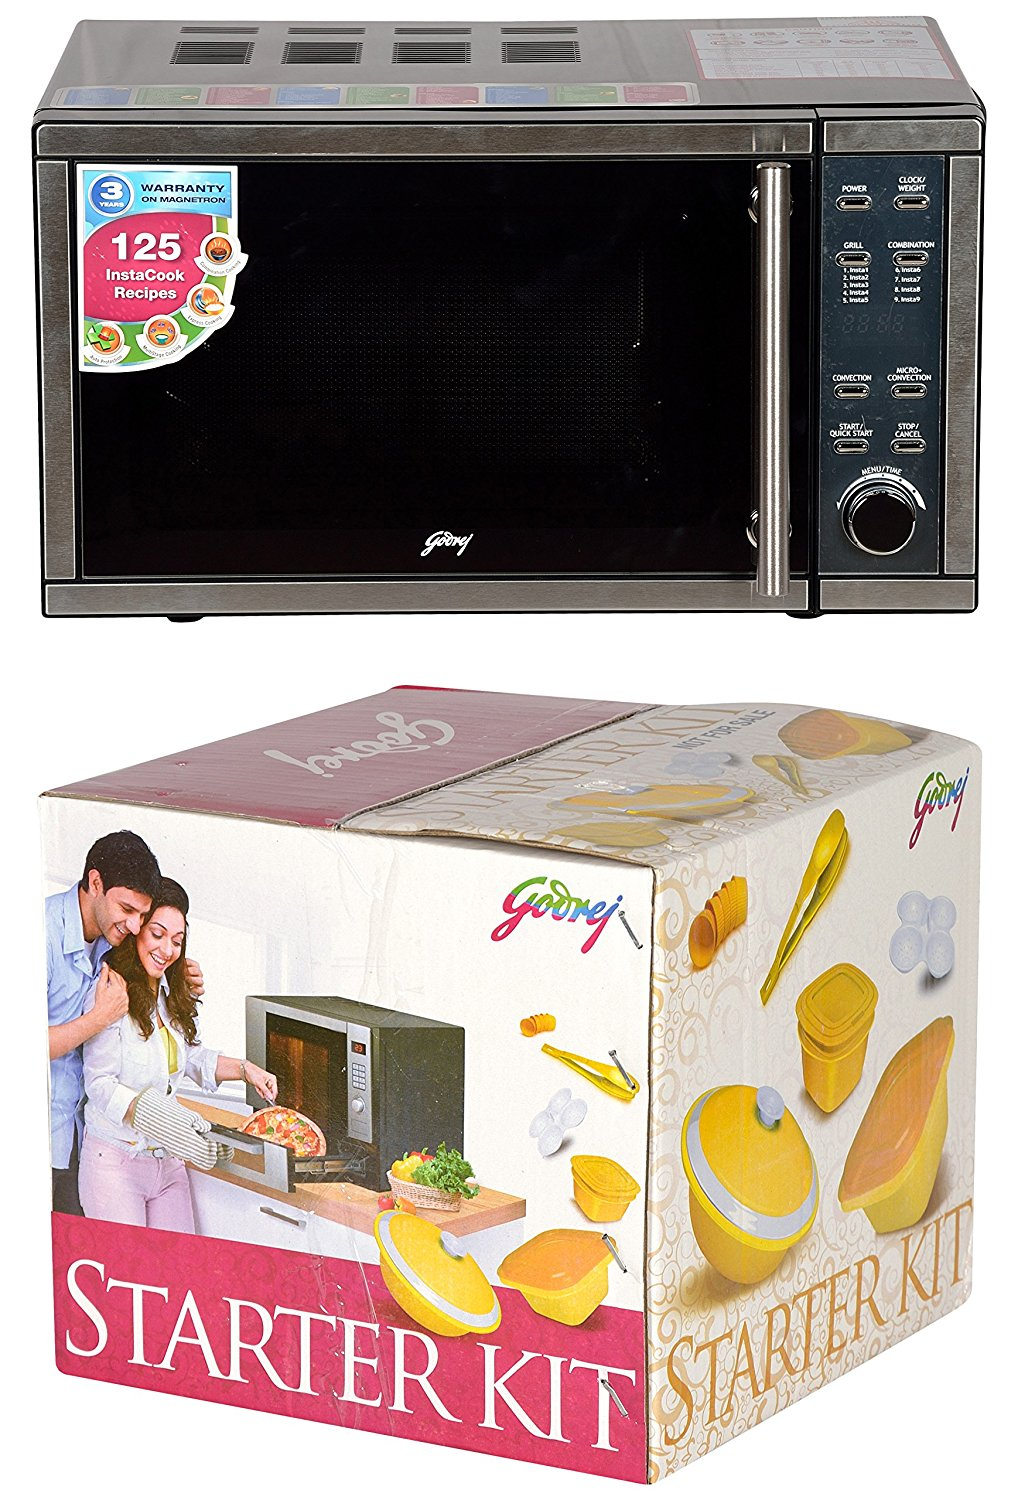 Microwave Oven from Godrej Brand